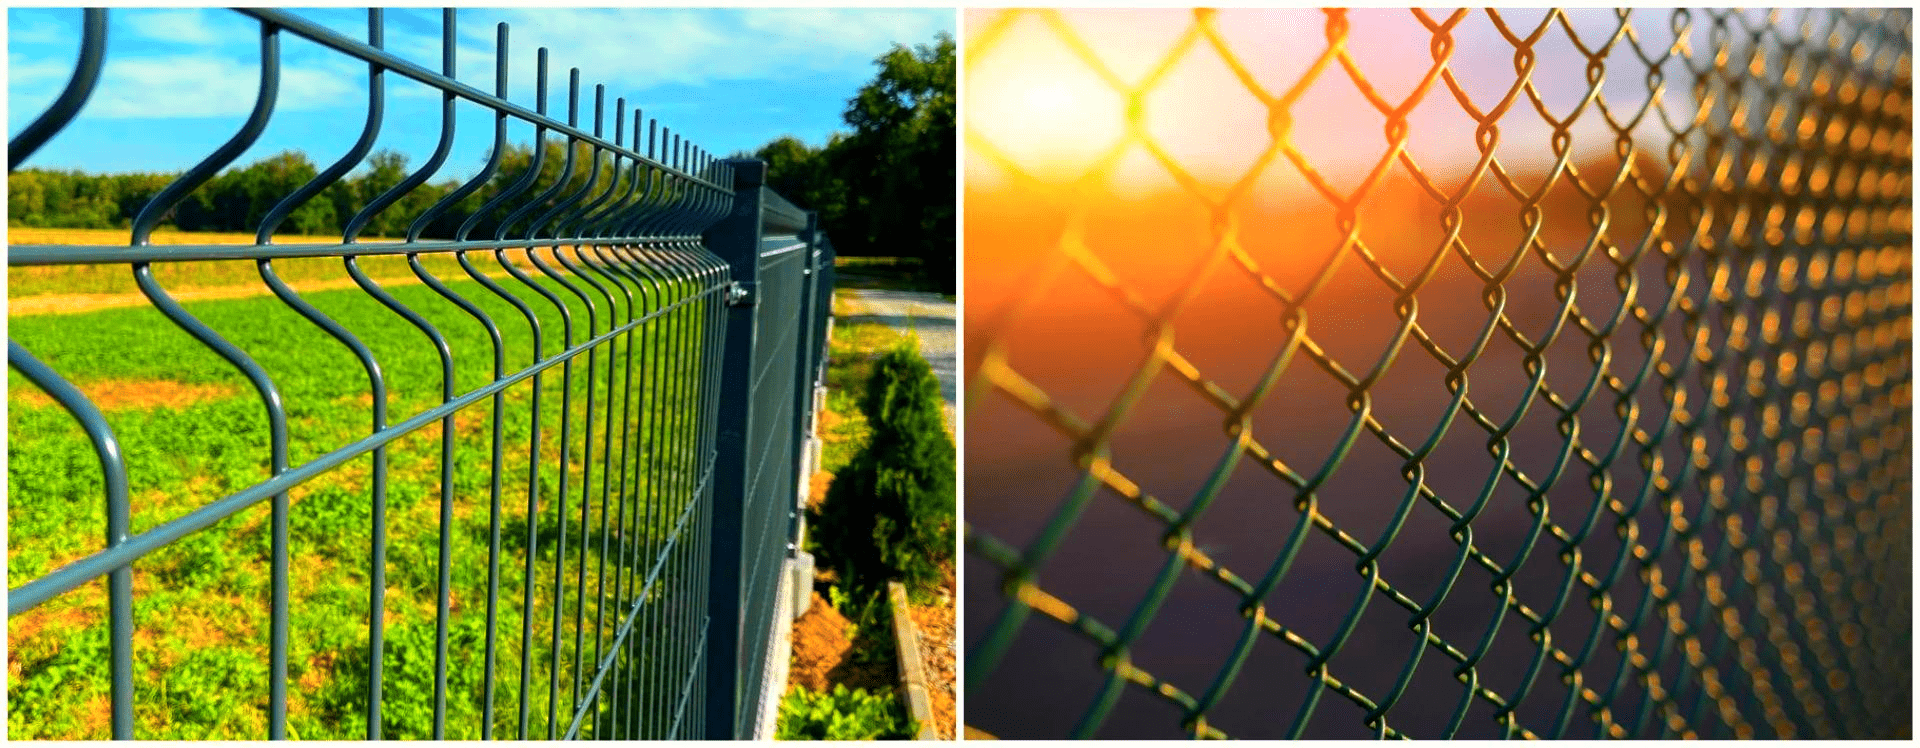 3D Welded Fence&Chain Link Fence